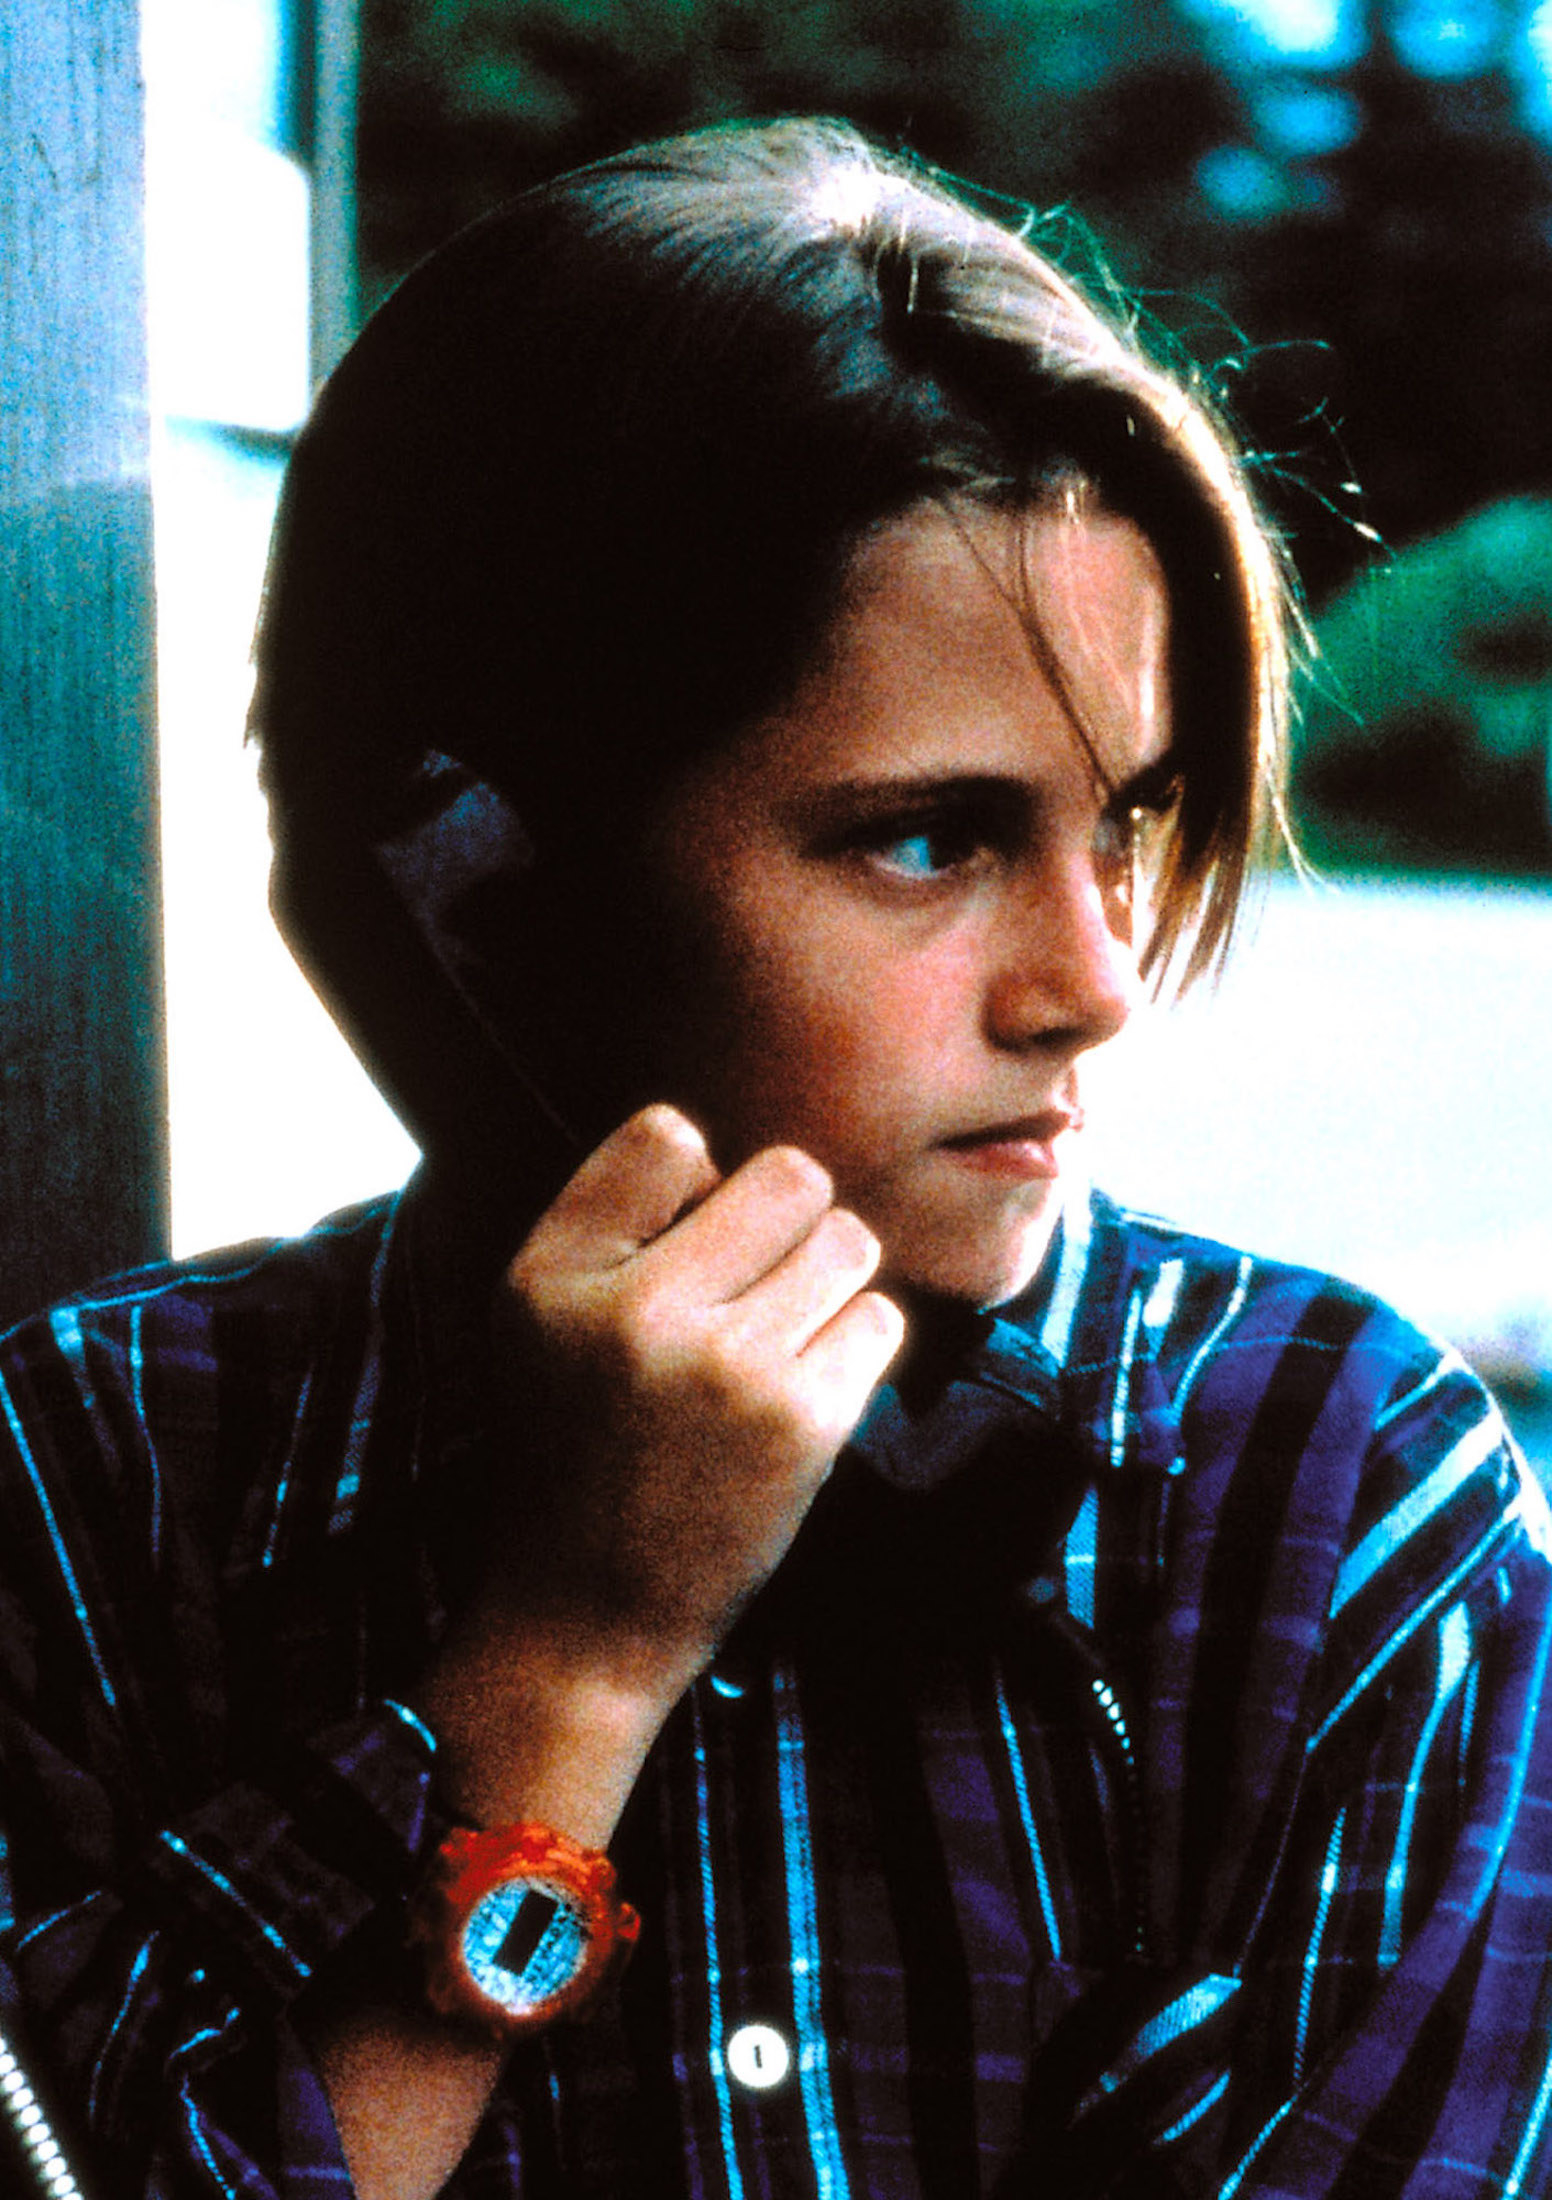 A young Kristen Stewart talking into a pay phone while wearing a